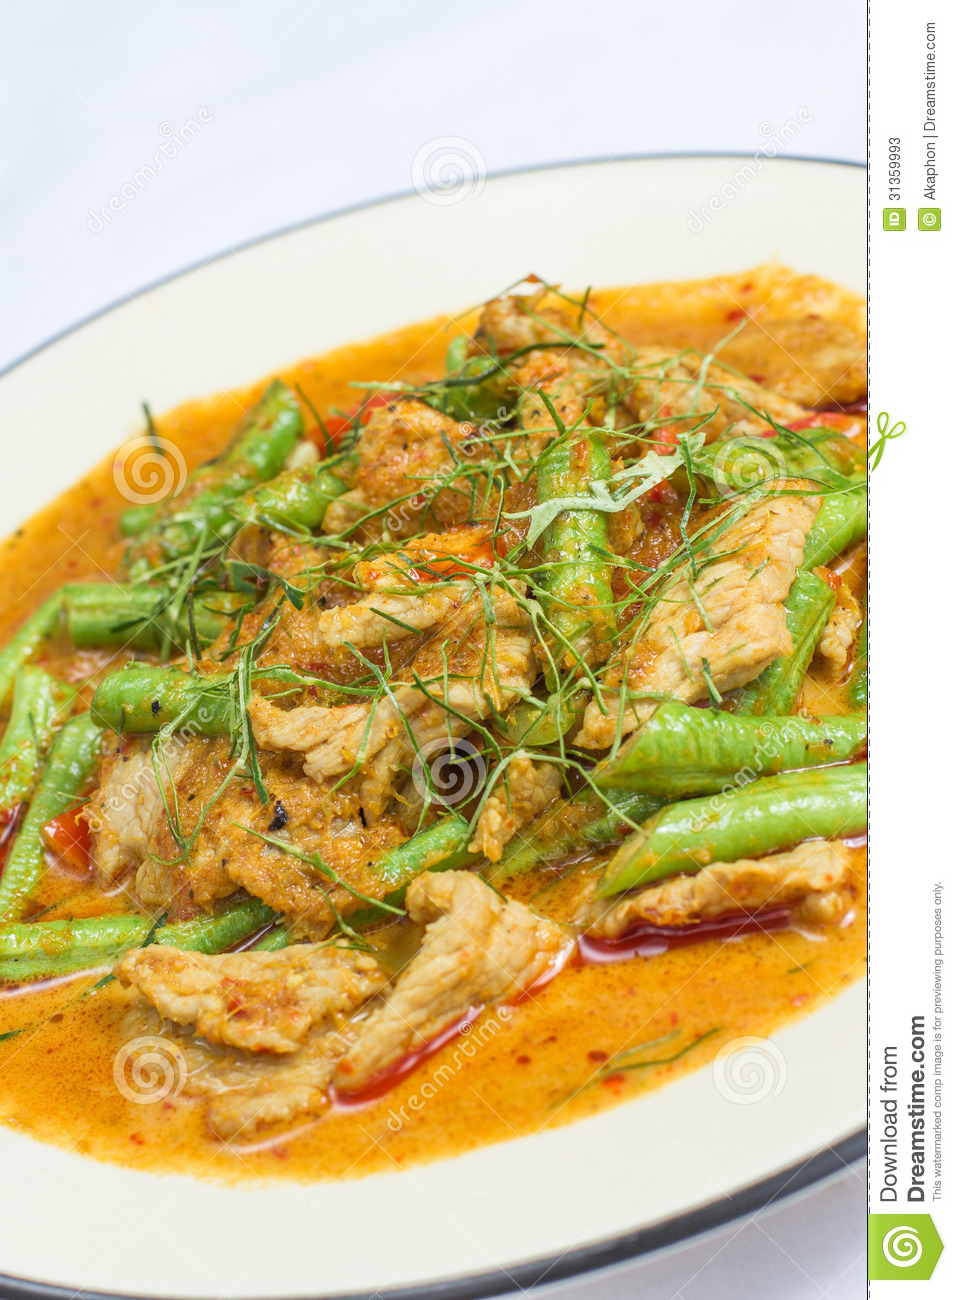 fb1949d4 Fried Chicken With Red Curry Stock Image - Image of classic, bean ...